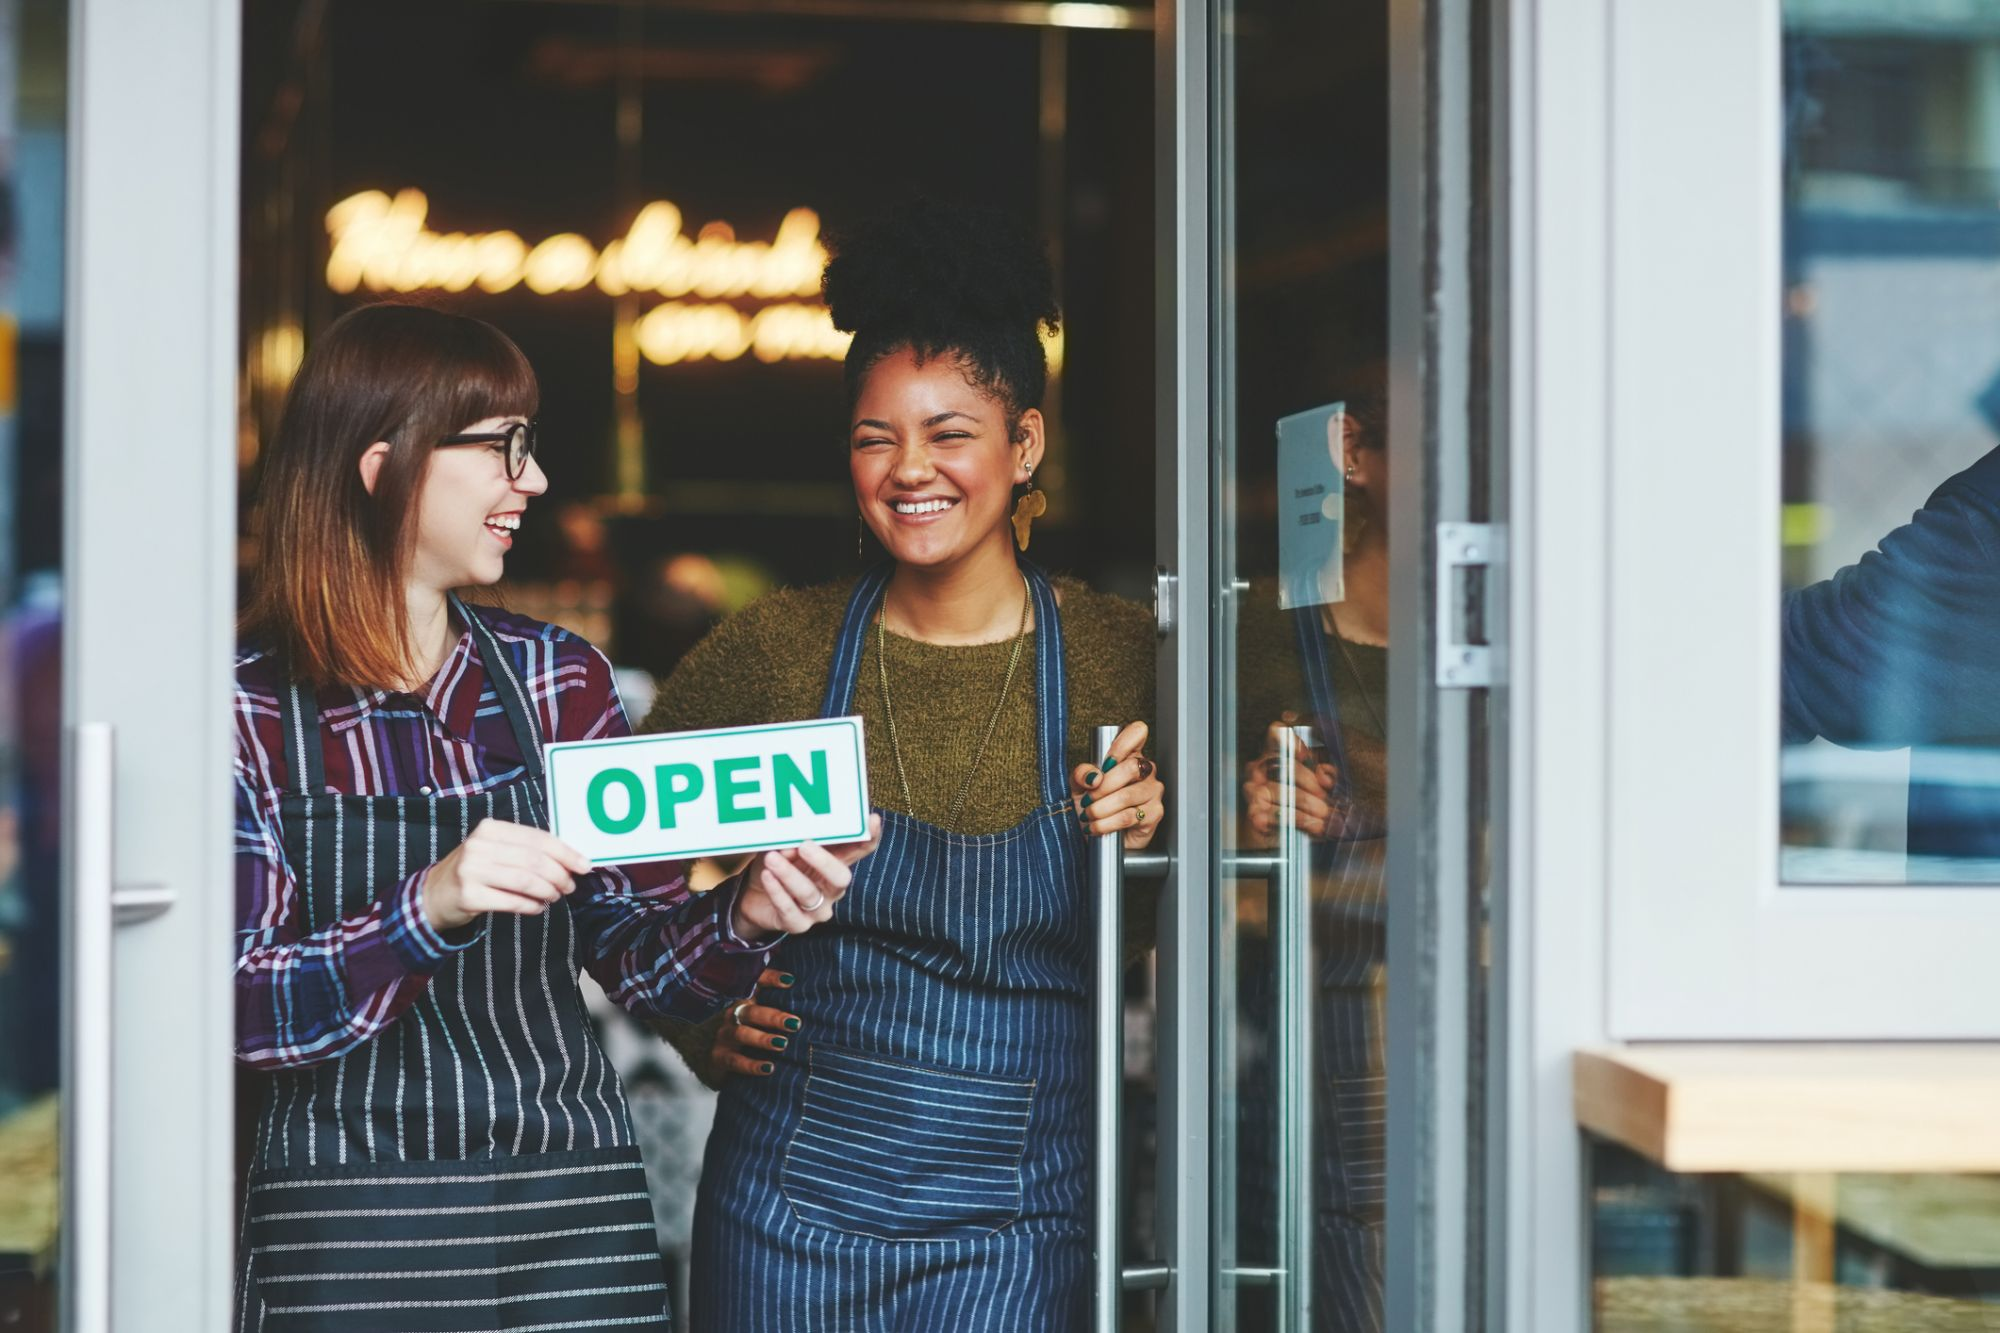 Lessons All Entrepreneurs Can Learn From the Shop Local Movement